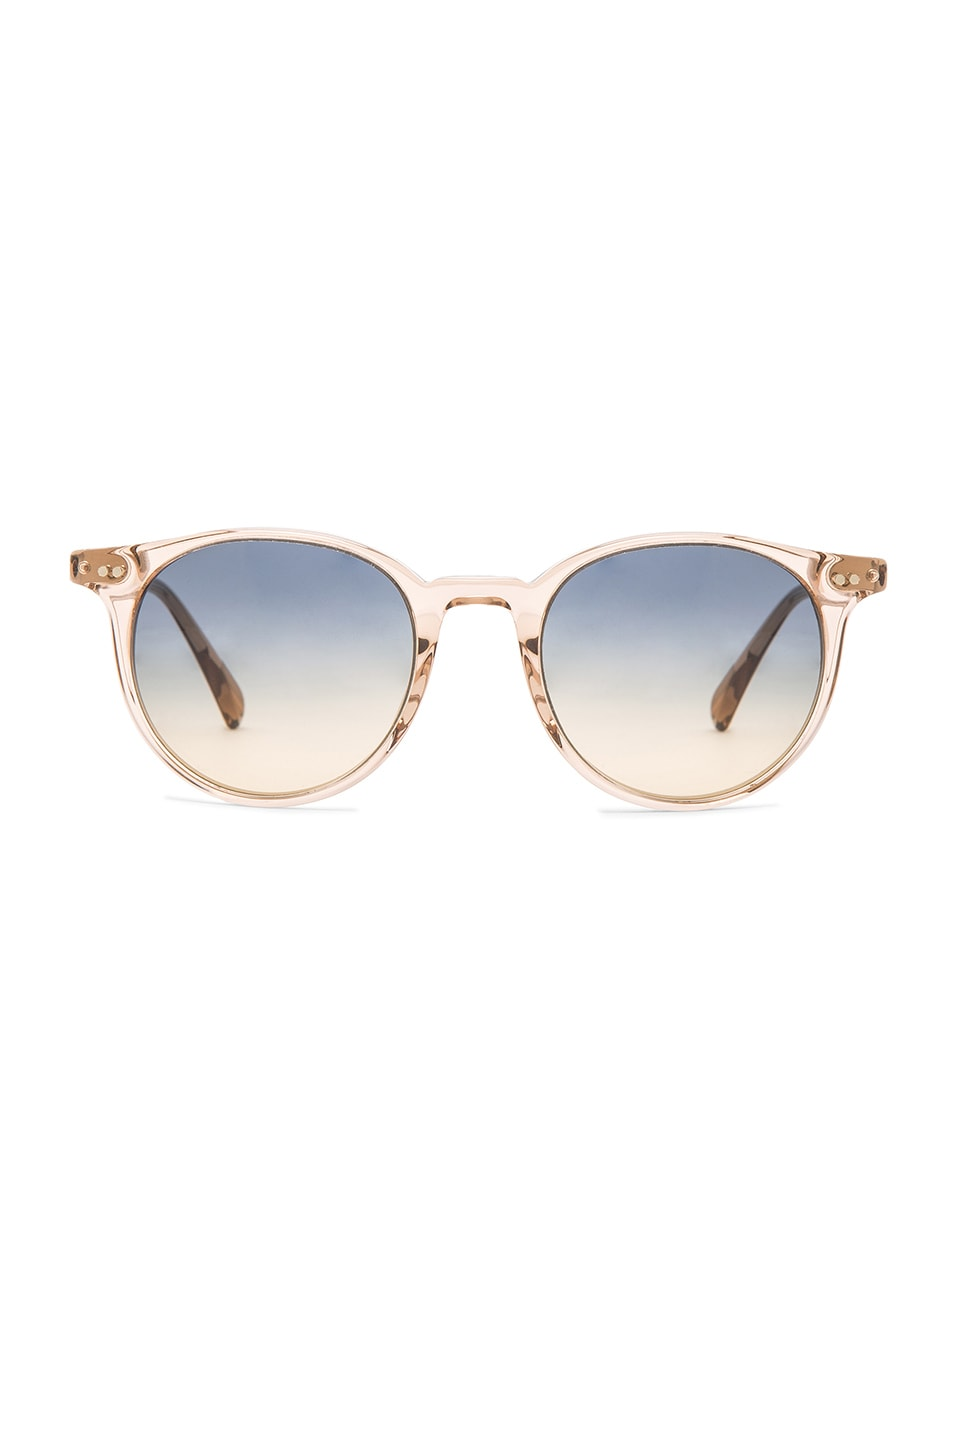 Image 1 of Oliver Peoples Custom Delray Sunglasses in Blush & Opal Dusk